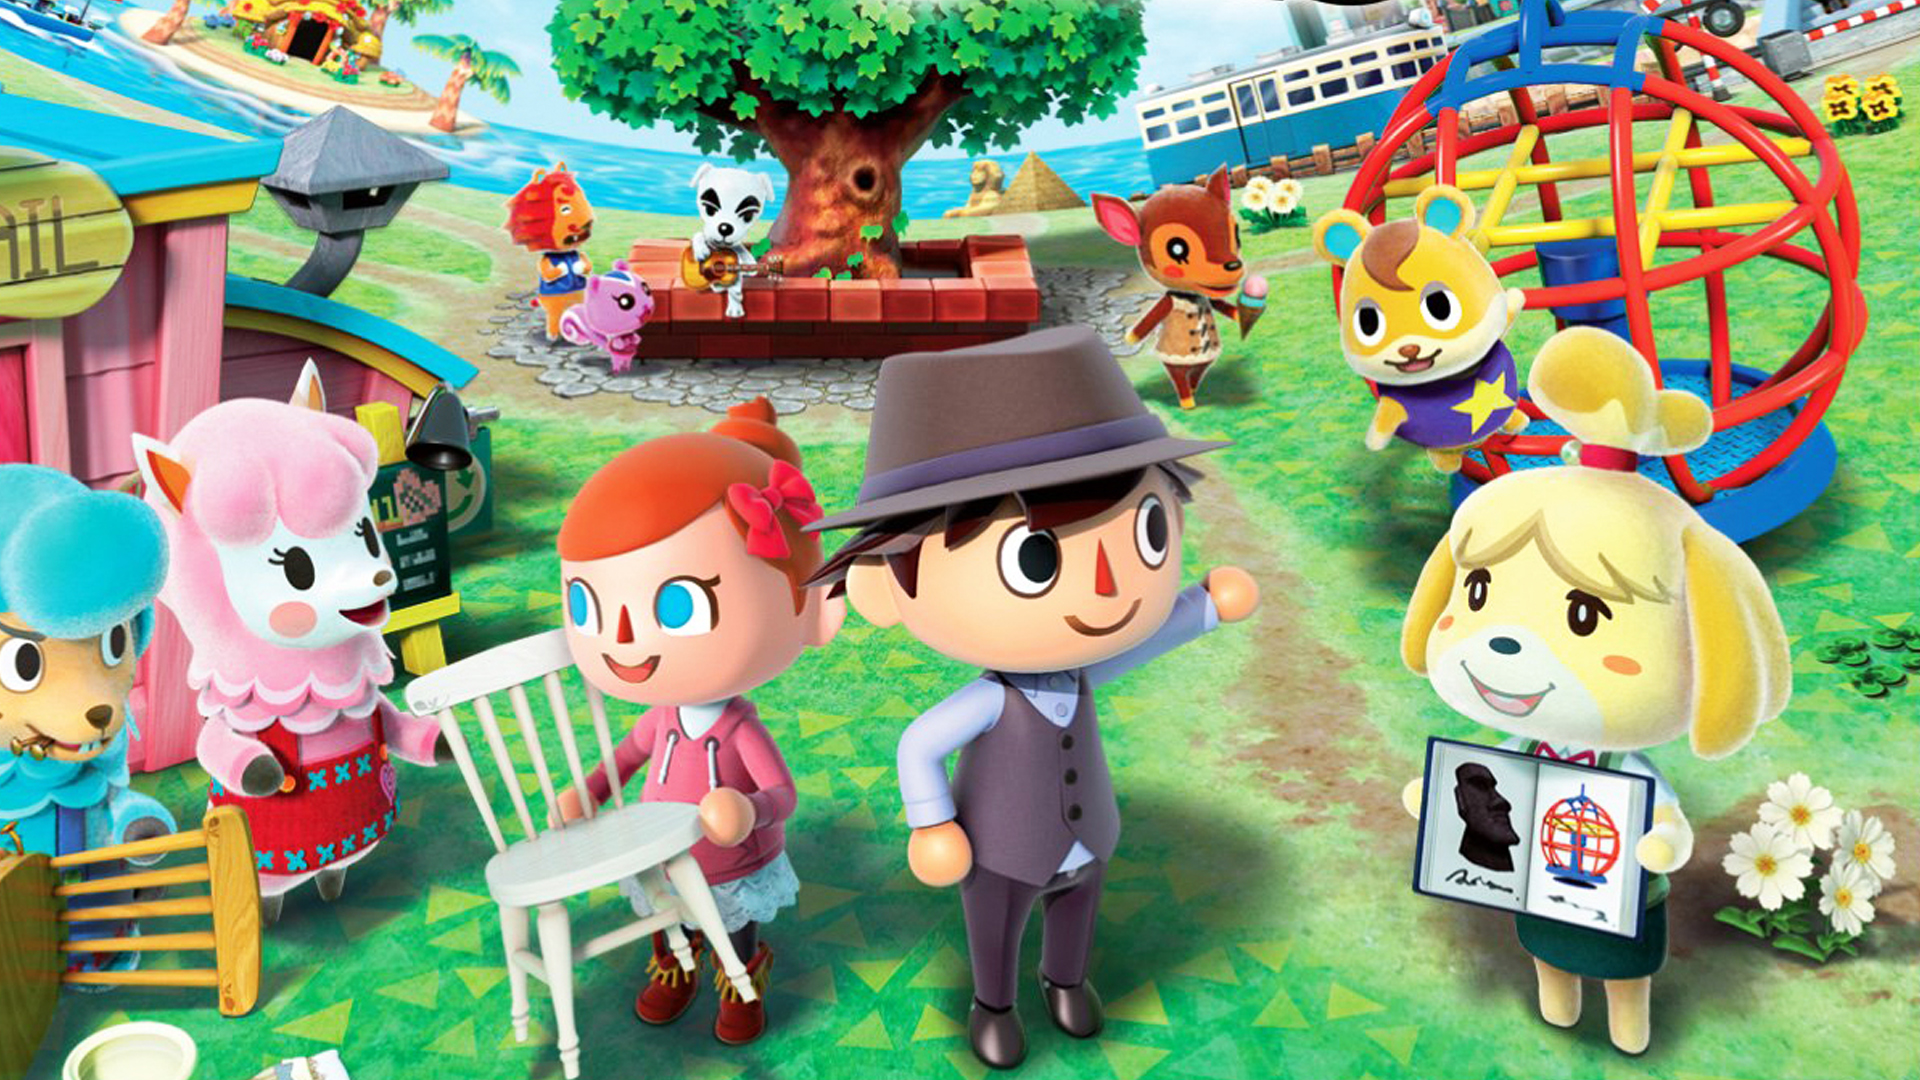 Reggie is aware of fans' interest in Mother 3 and Animal